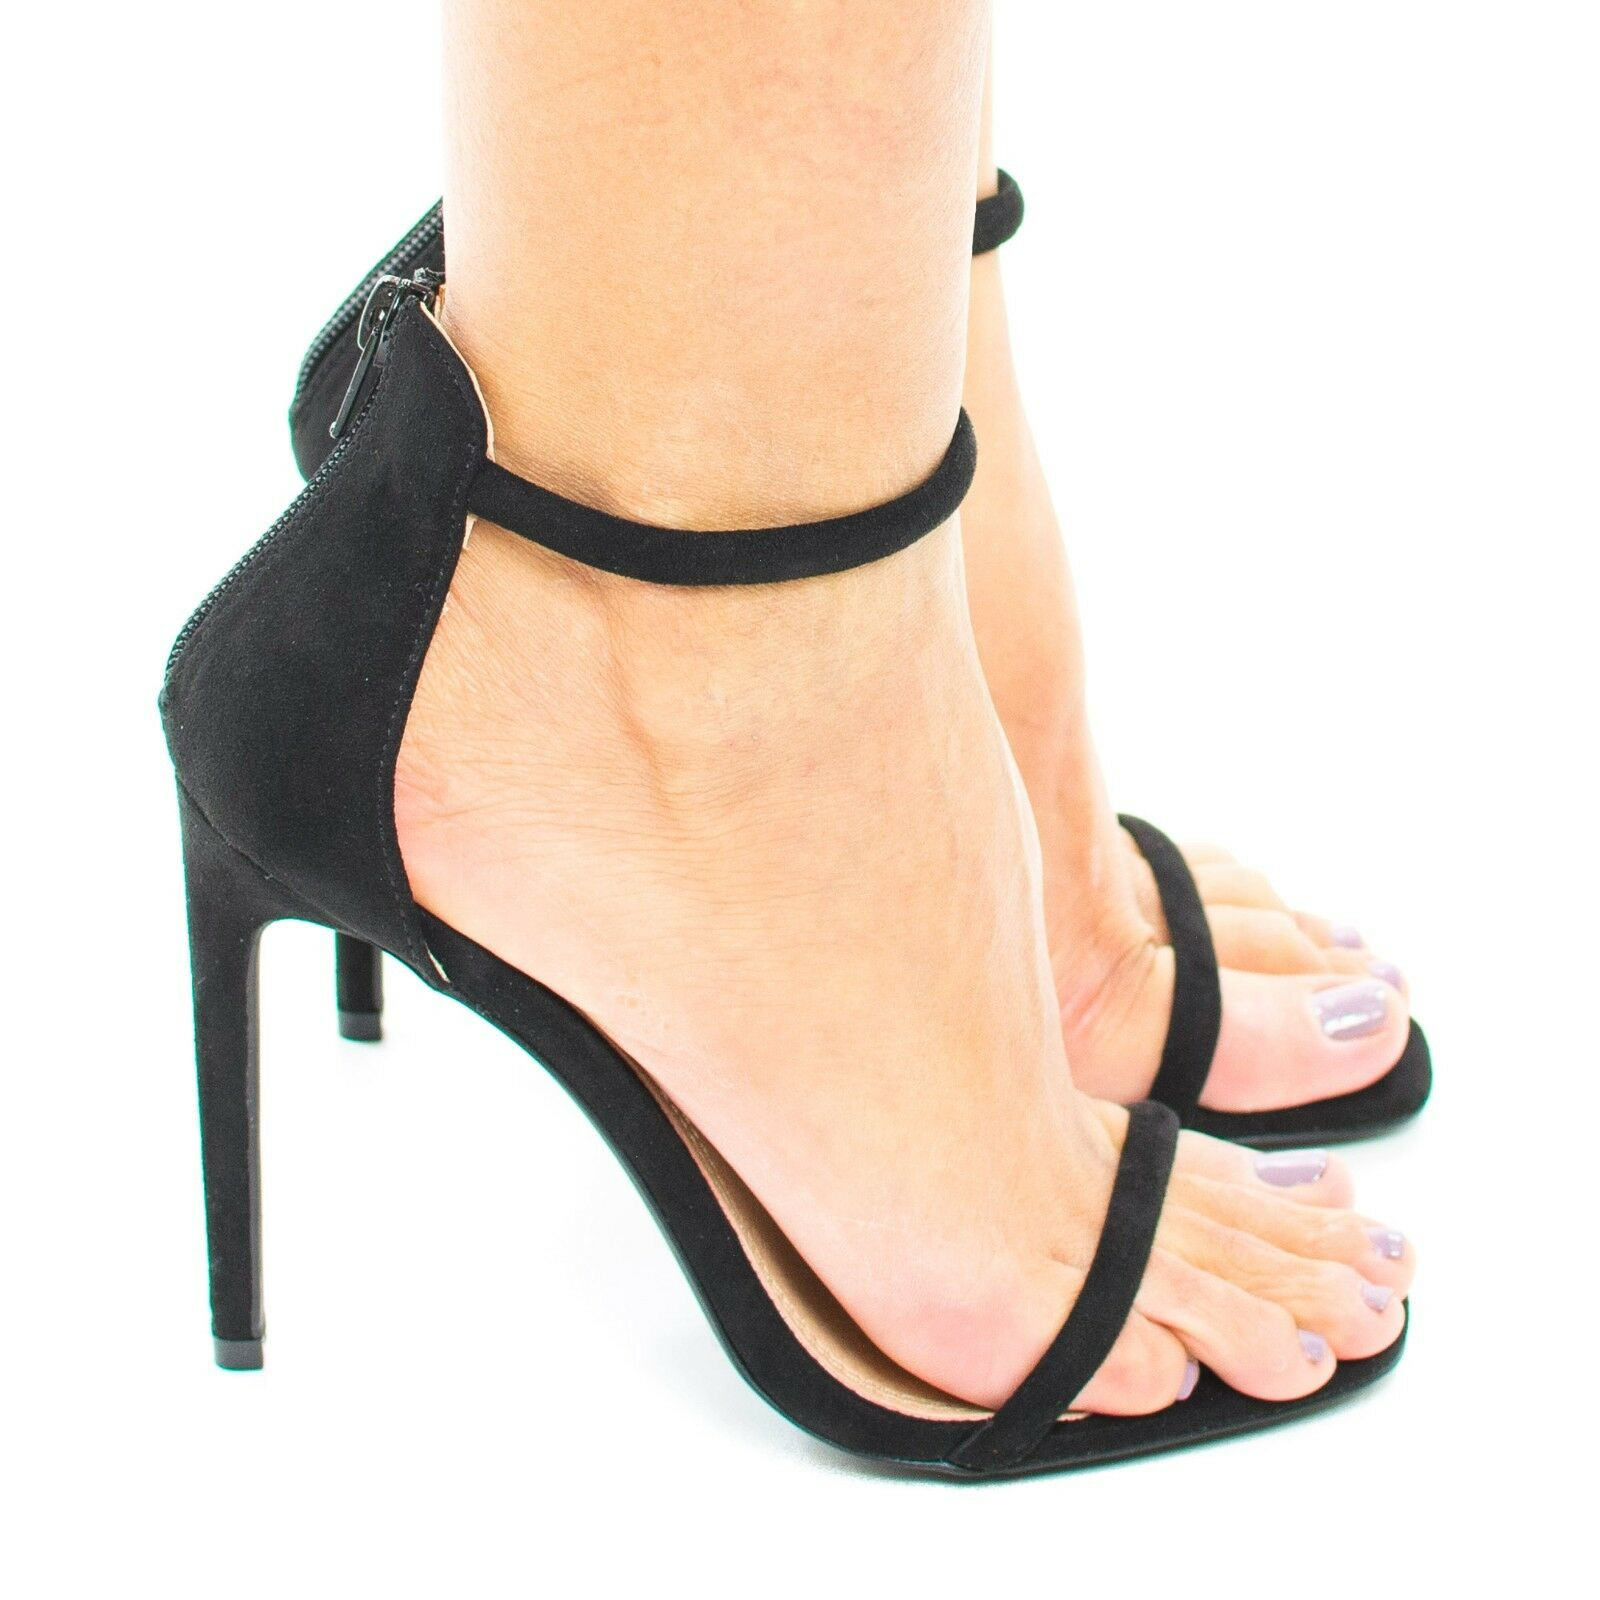 Angelica1 Angelica1 Angelica1 Women's High Heel Strappy Dress Sandal 3afc06